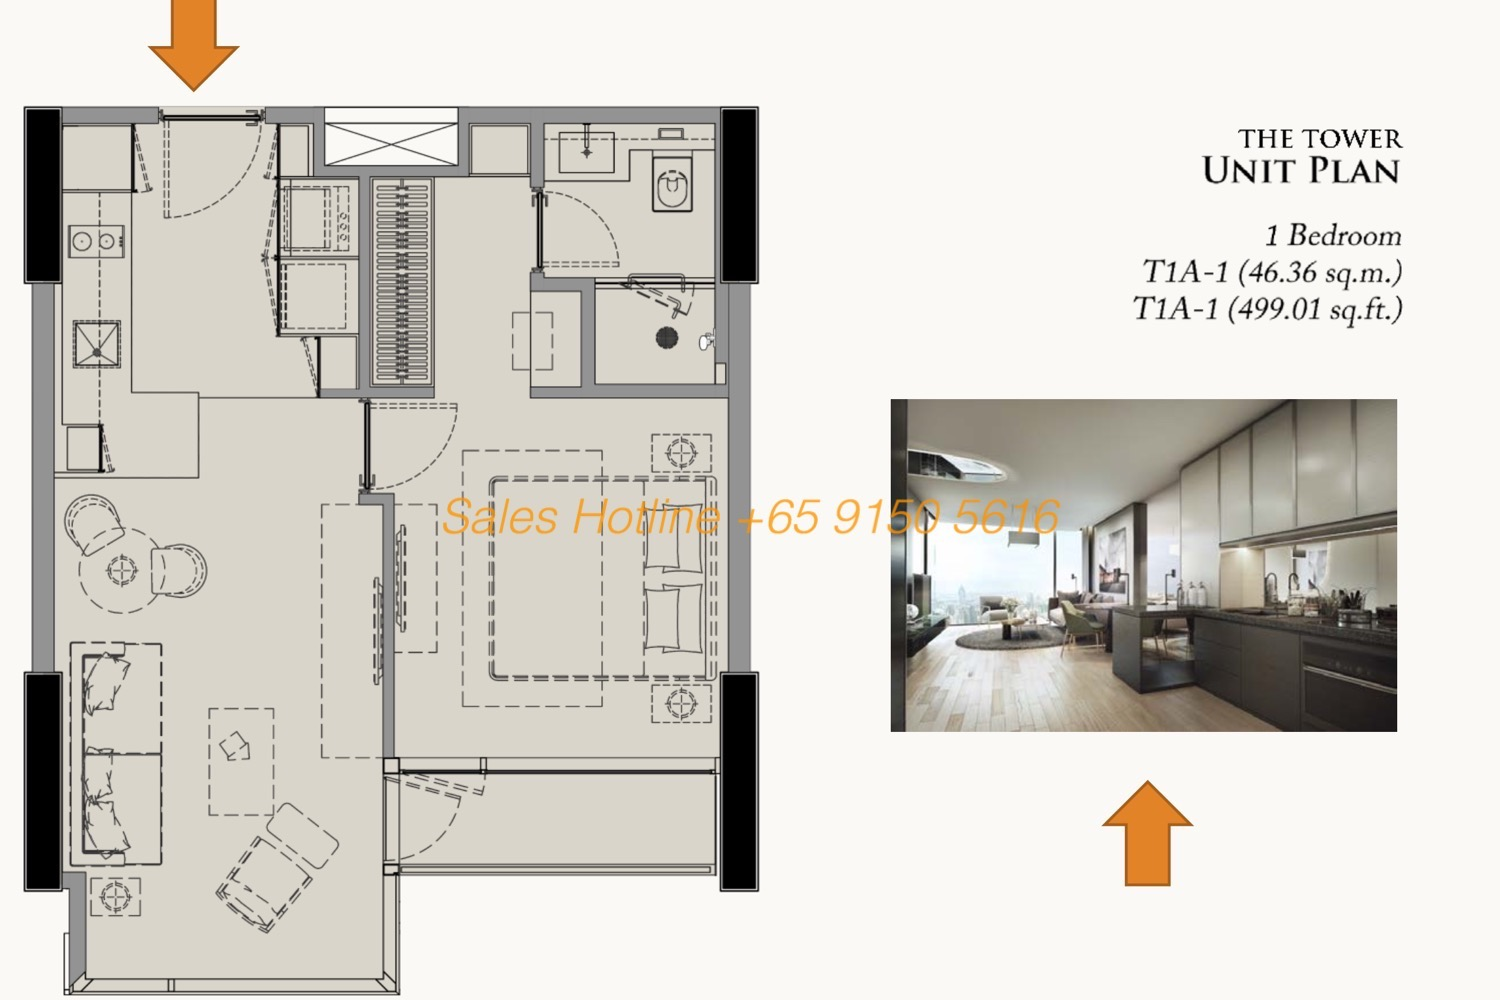 28 Chidlom Site Plan - 1 Bedroom